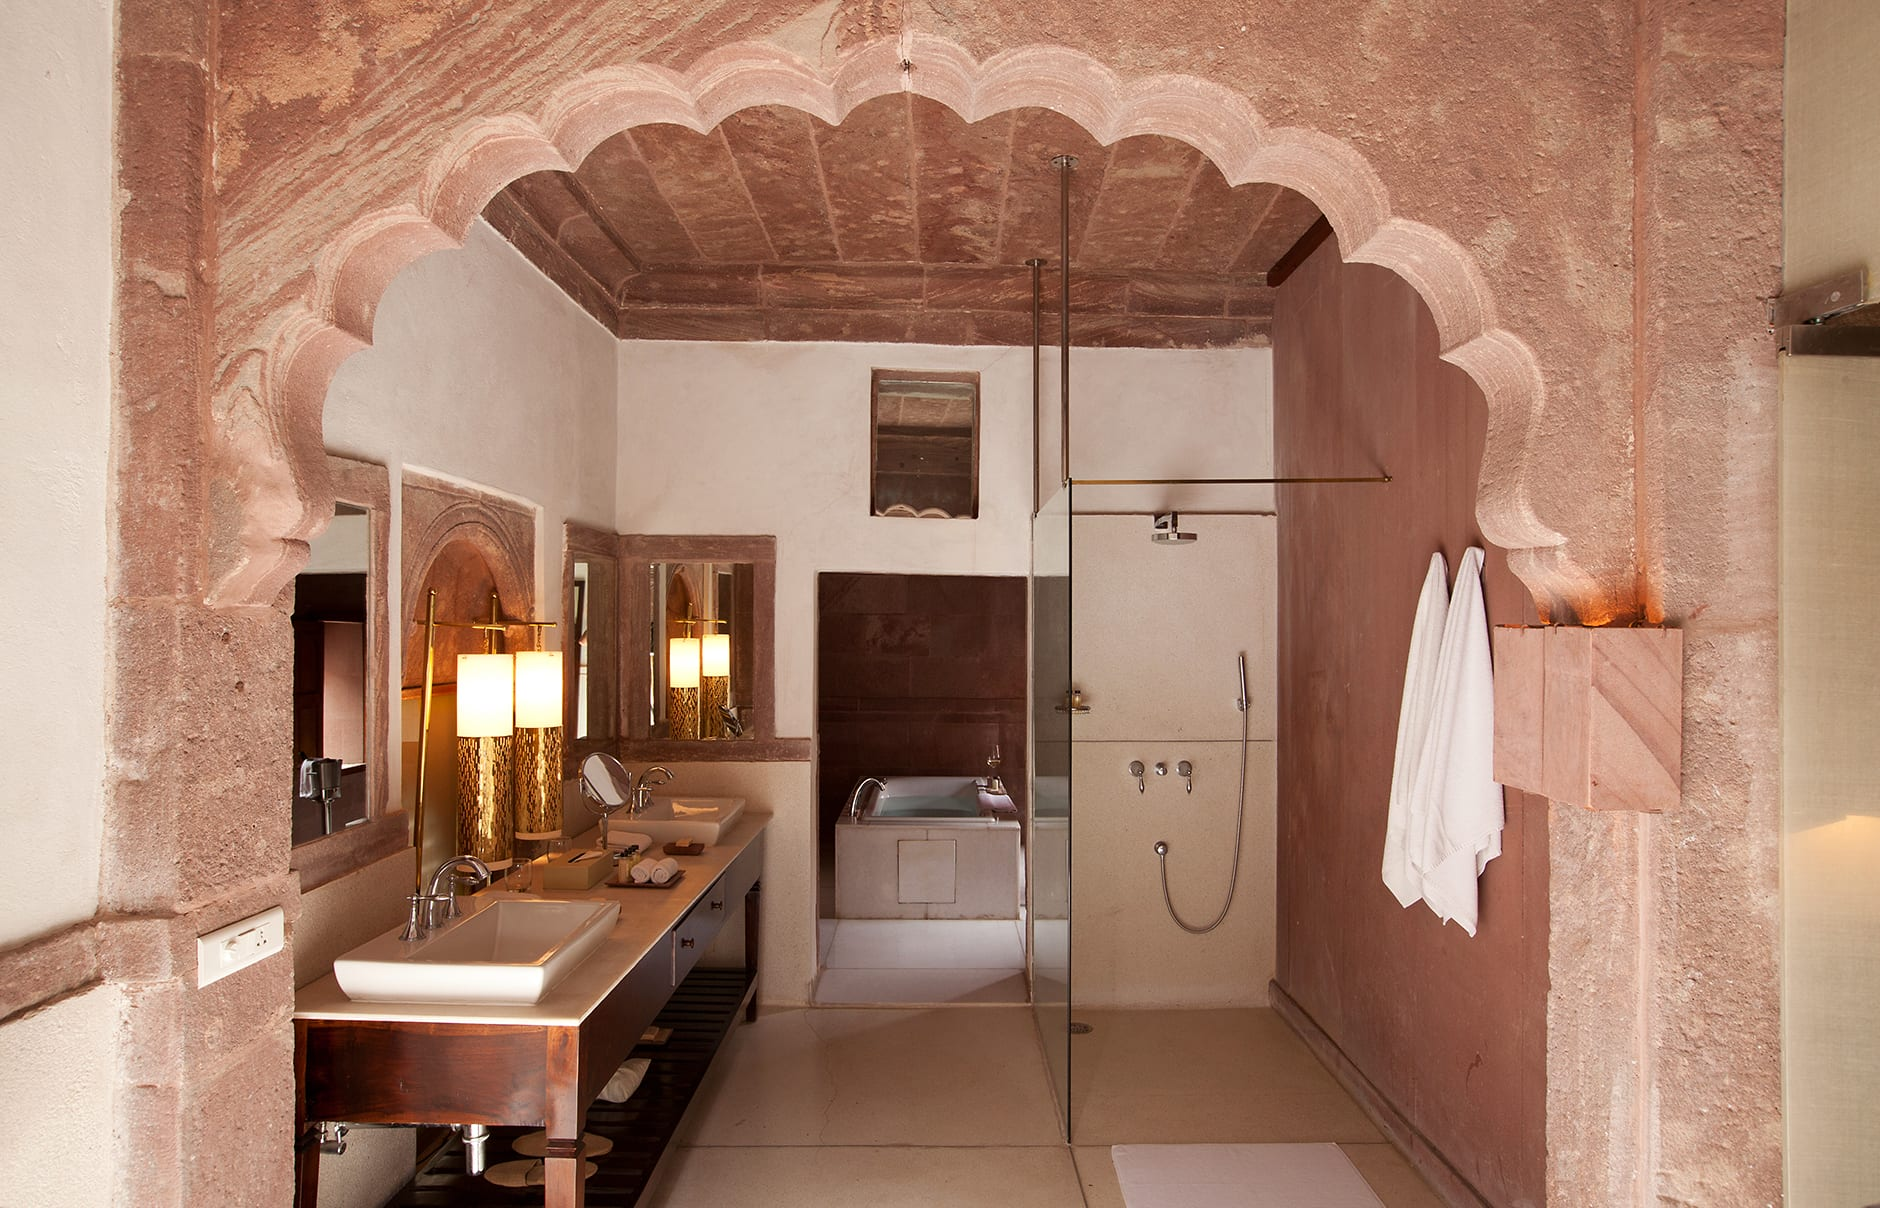 Heritage Suite bathroom. Raas Jodhpur, India. © Rass